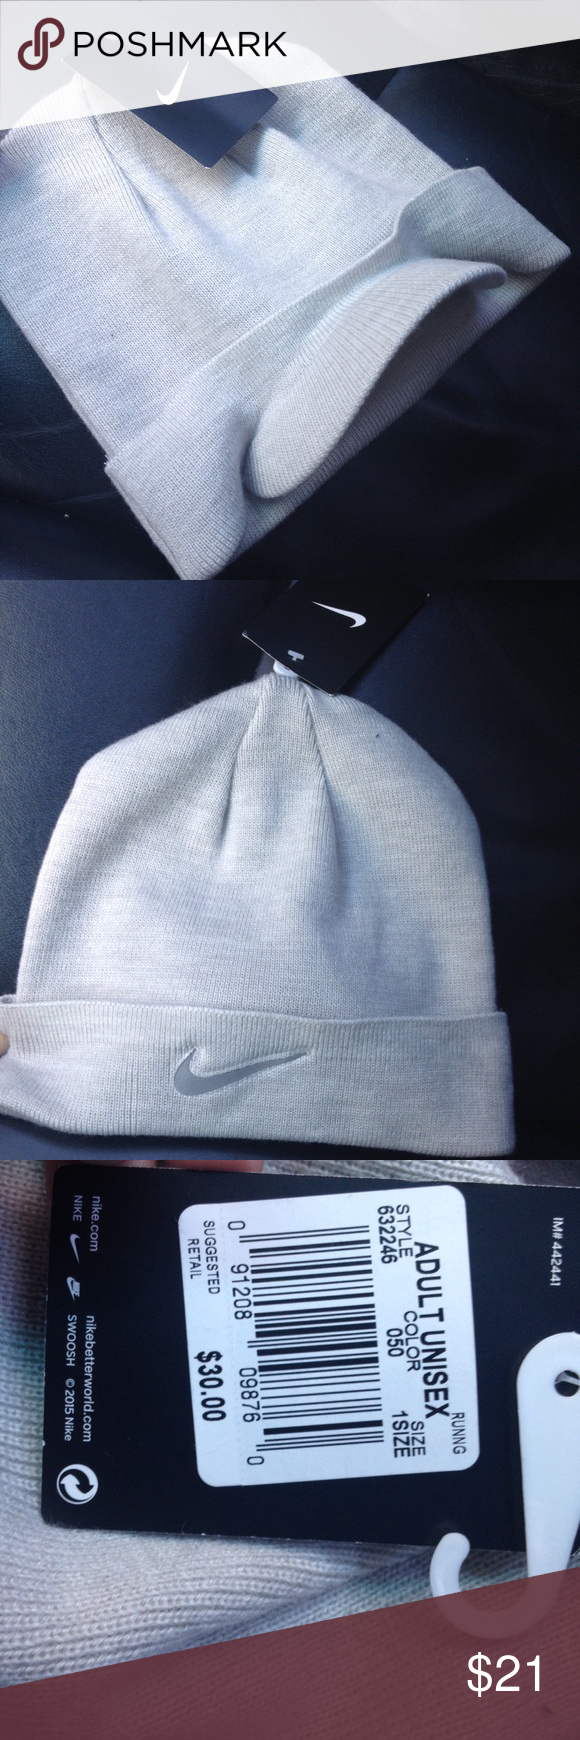 NIKE grey Run Crew knit visor beanie hat 🎁NEW NEW WITH TAG! LAST ONE 9a190a90d5f